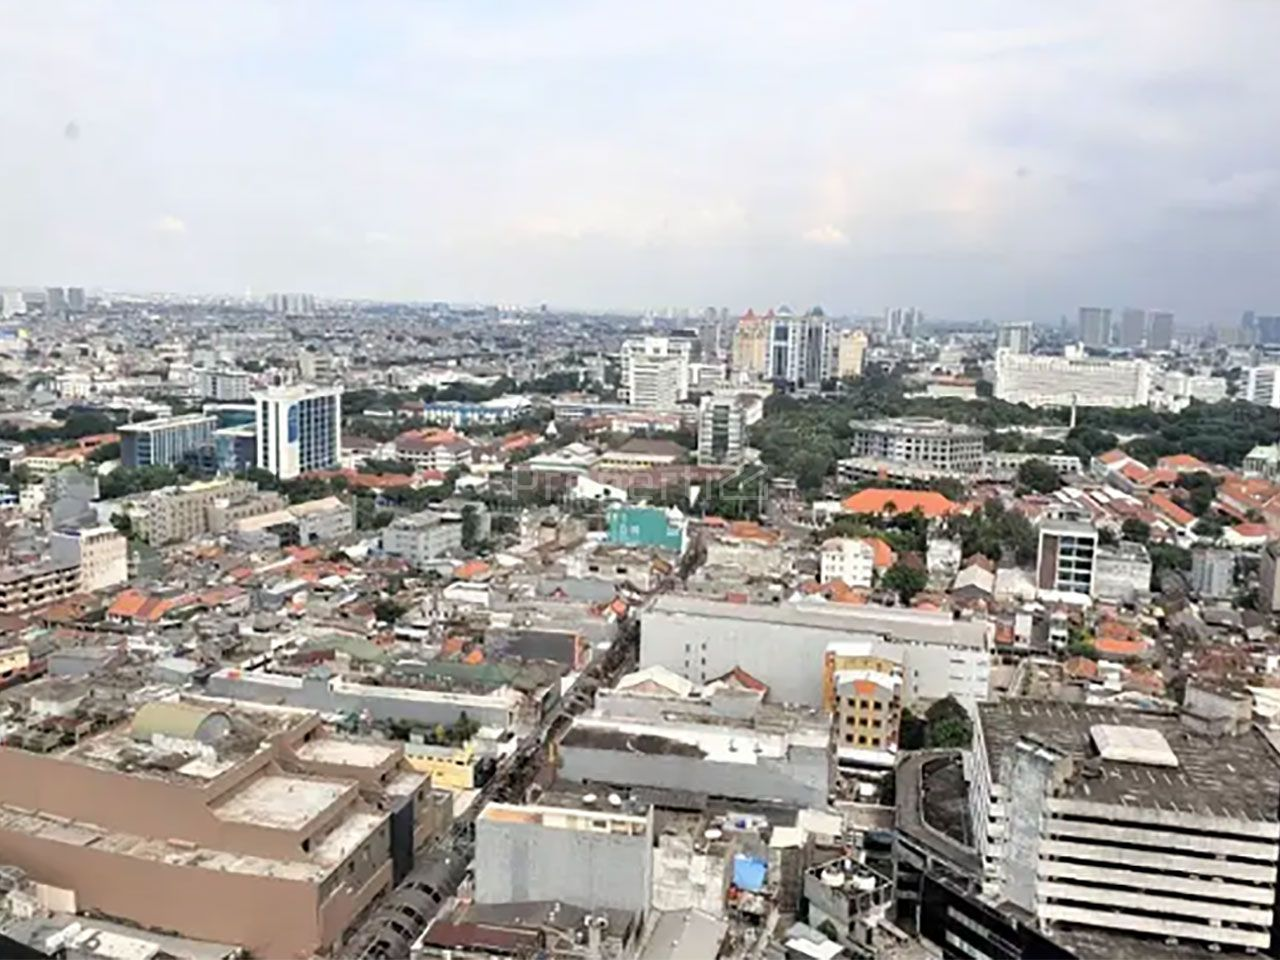 3BR Apartment Unit at A Tower Pasar Baru Mansion, 8th Floor, Jakarta Pusat